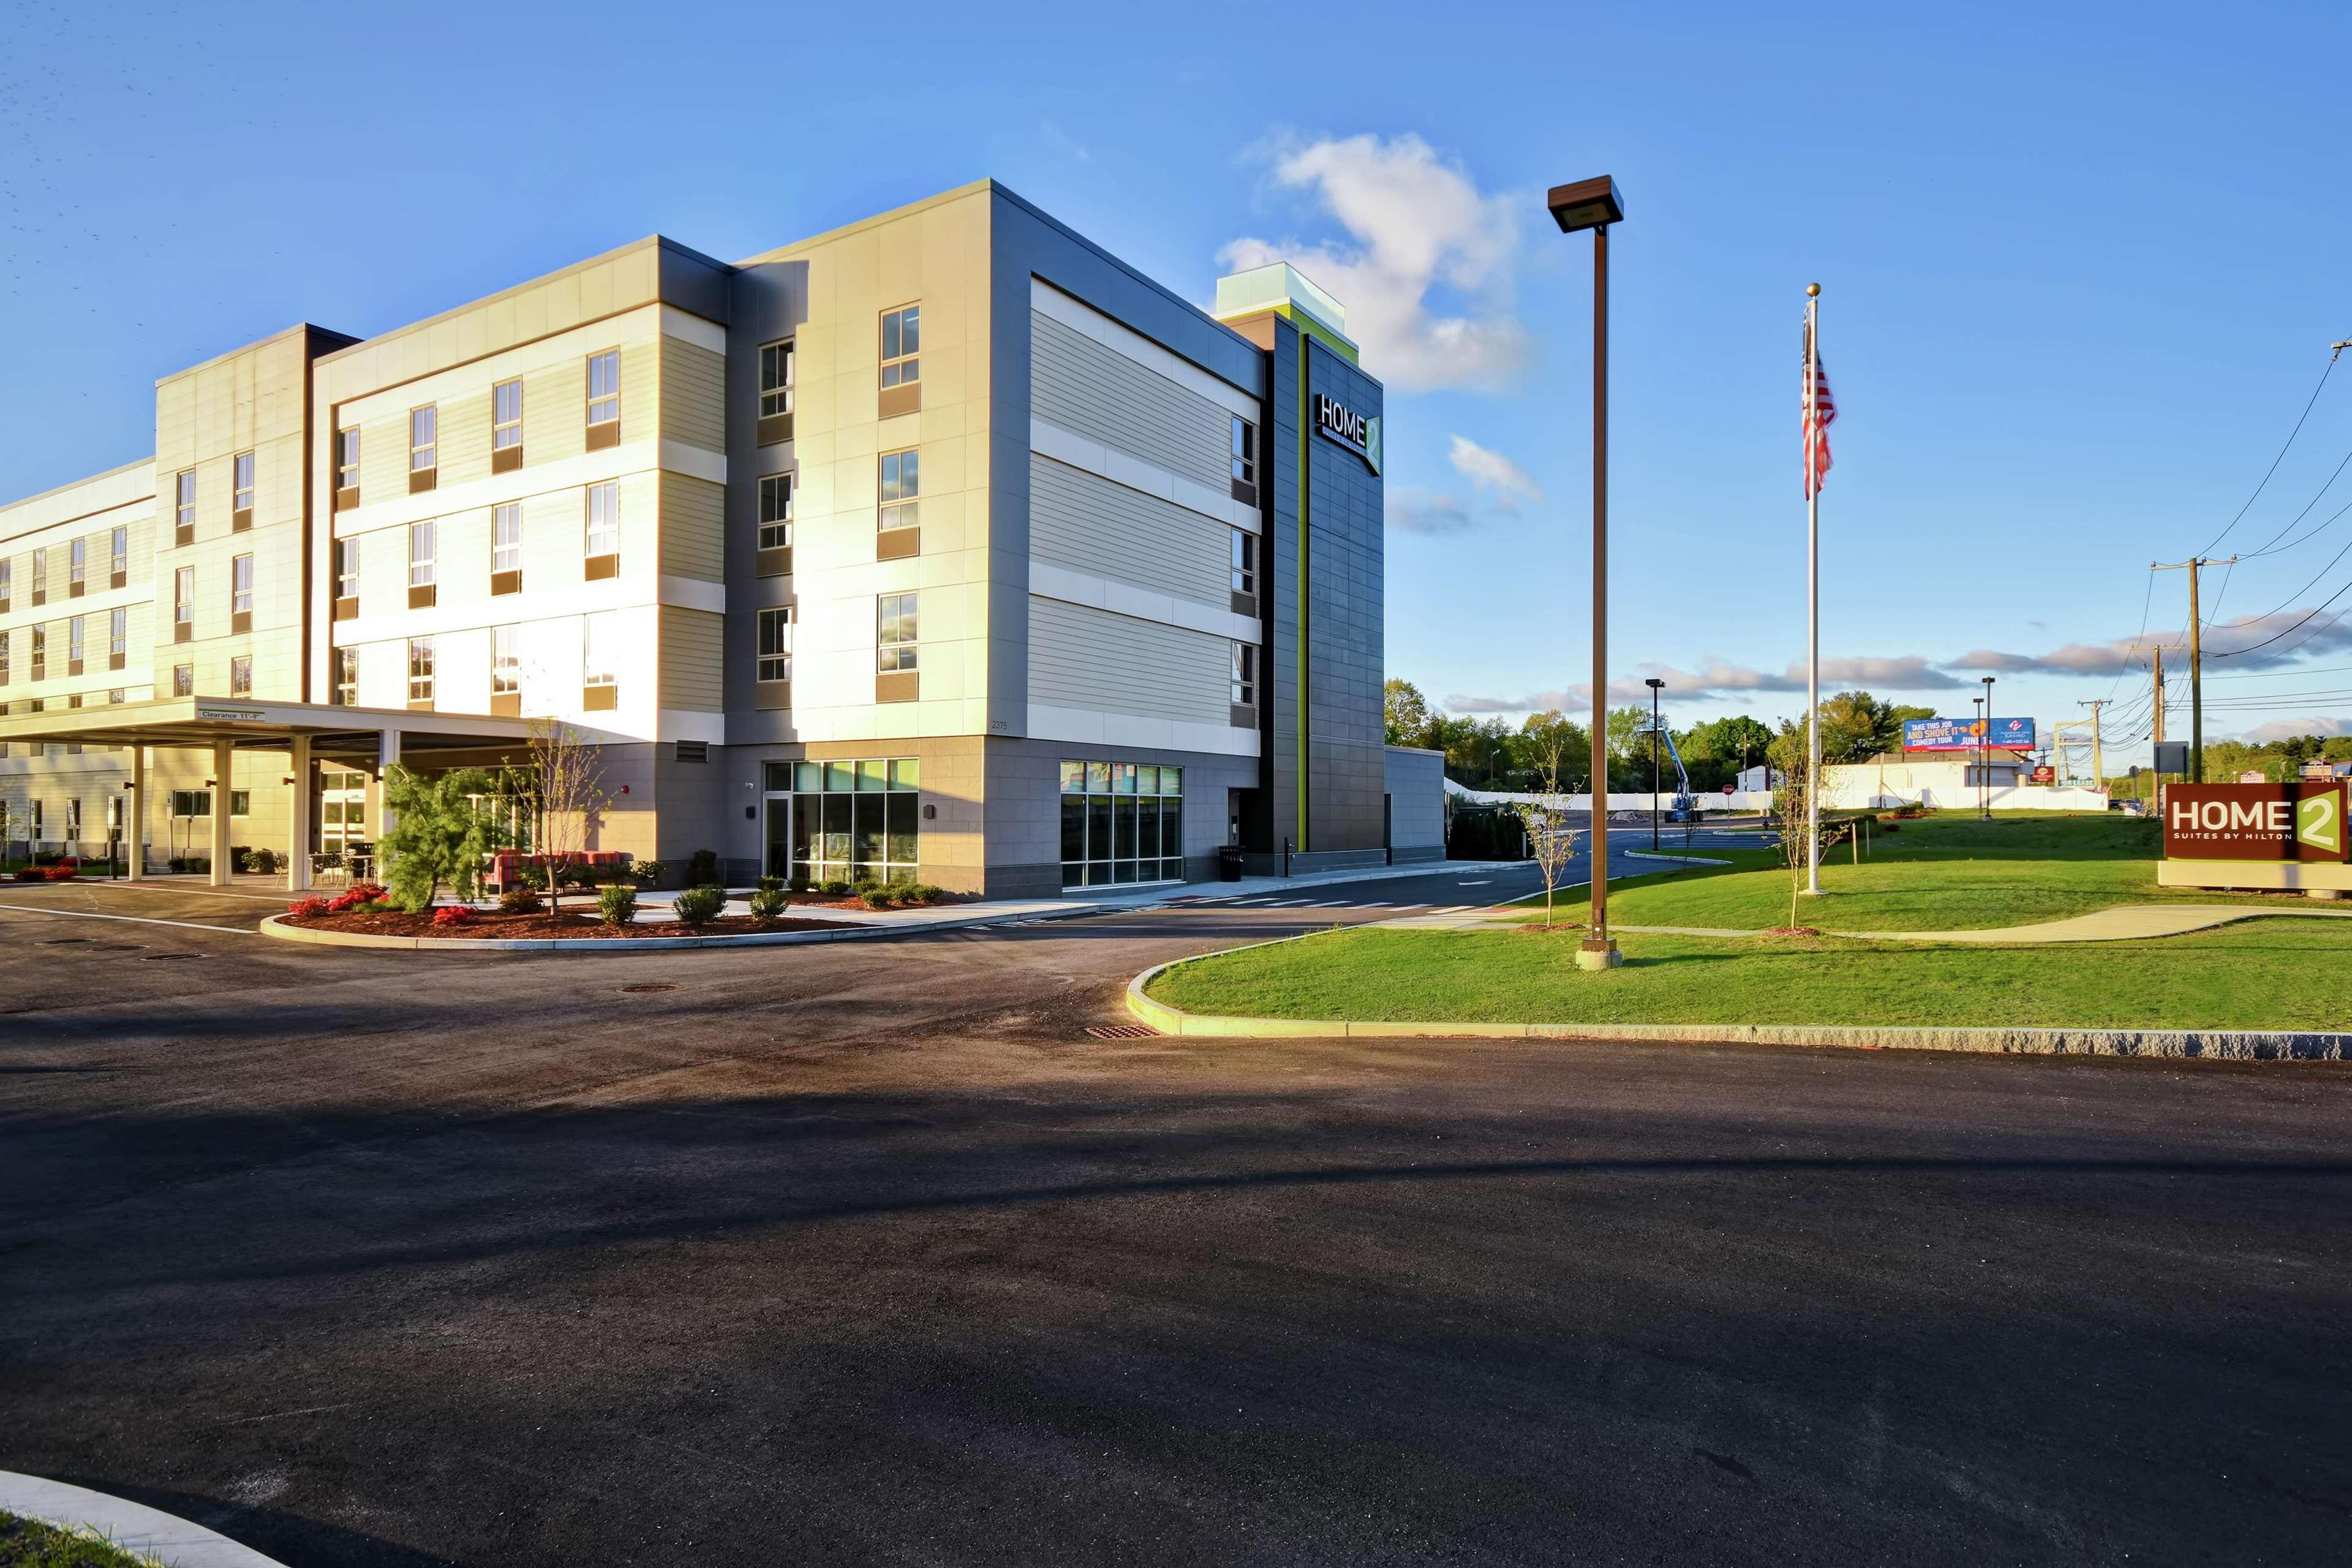 Home2 Suites by Hilton Walpole Boston, MA, Norfolk